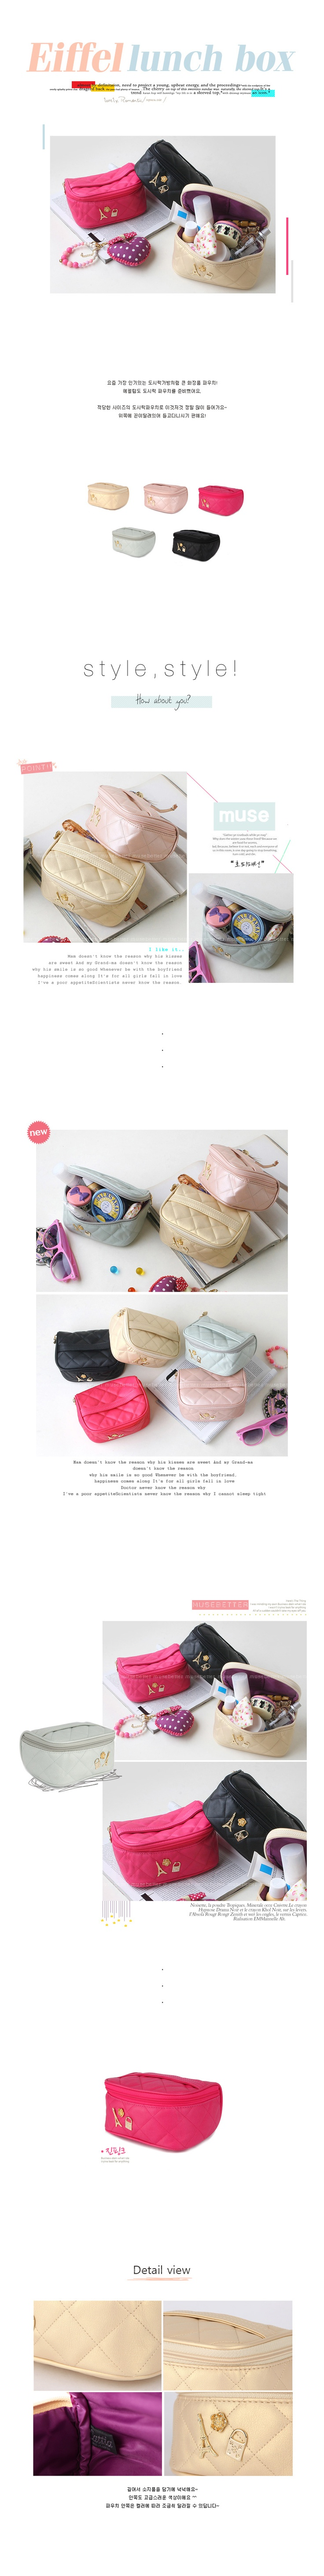 we ship worldwide    buy this at  http://indonesia.pikomiko.com/stationery/fashion-accessories-fancy/accessories-organizer/fcp-005-224.html, cosmetic pouch, organizer, fancy, cute, $22